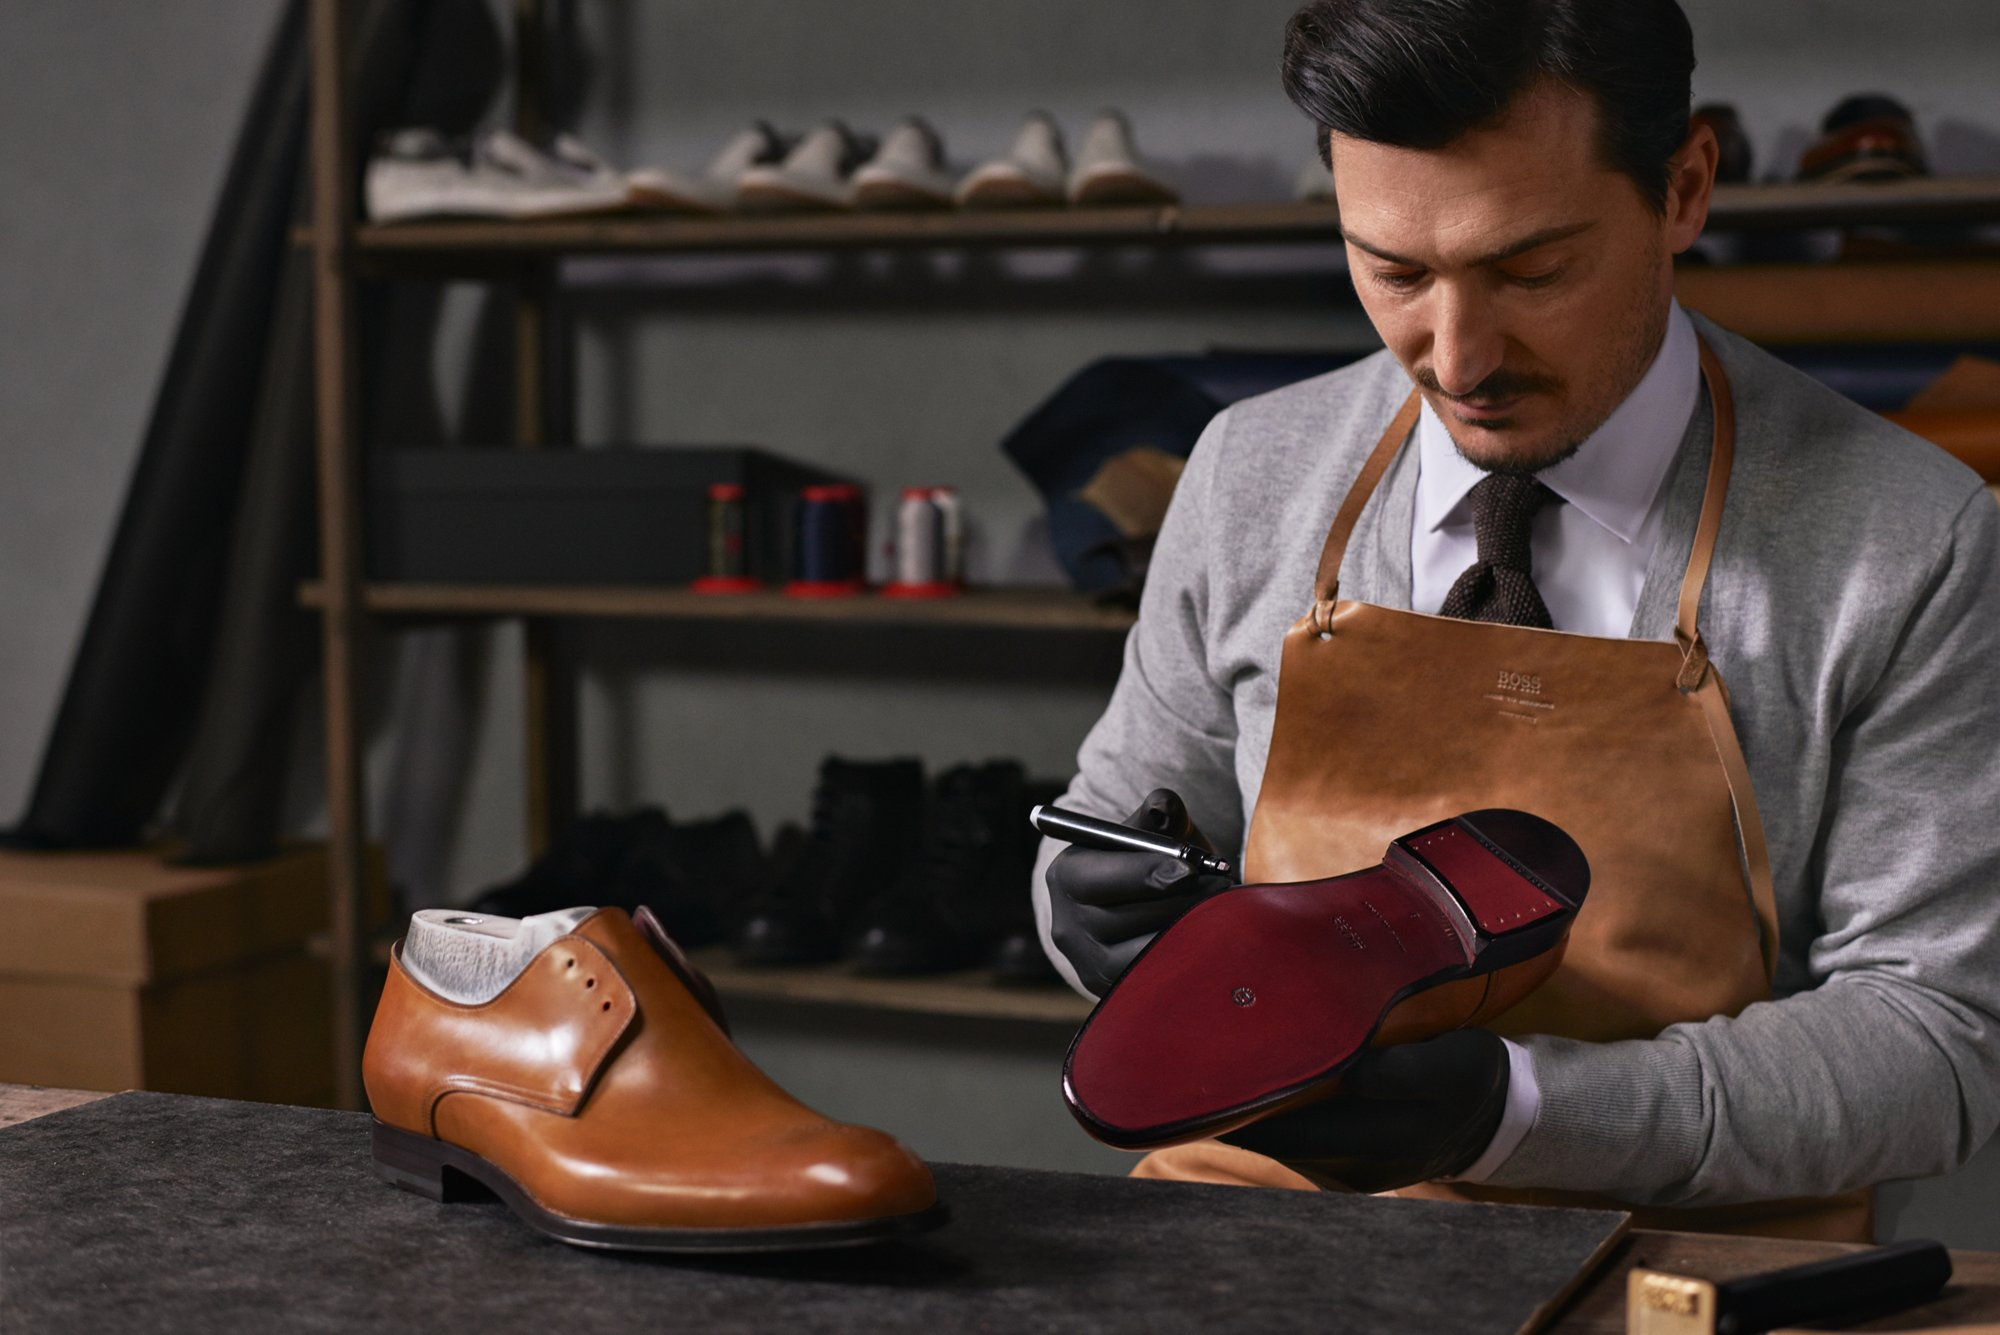 Artisan shoemaker at the HUGO BOSS production facility in Morrovalle, Italy